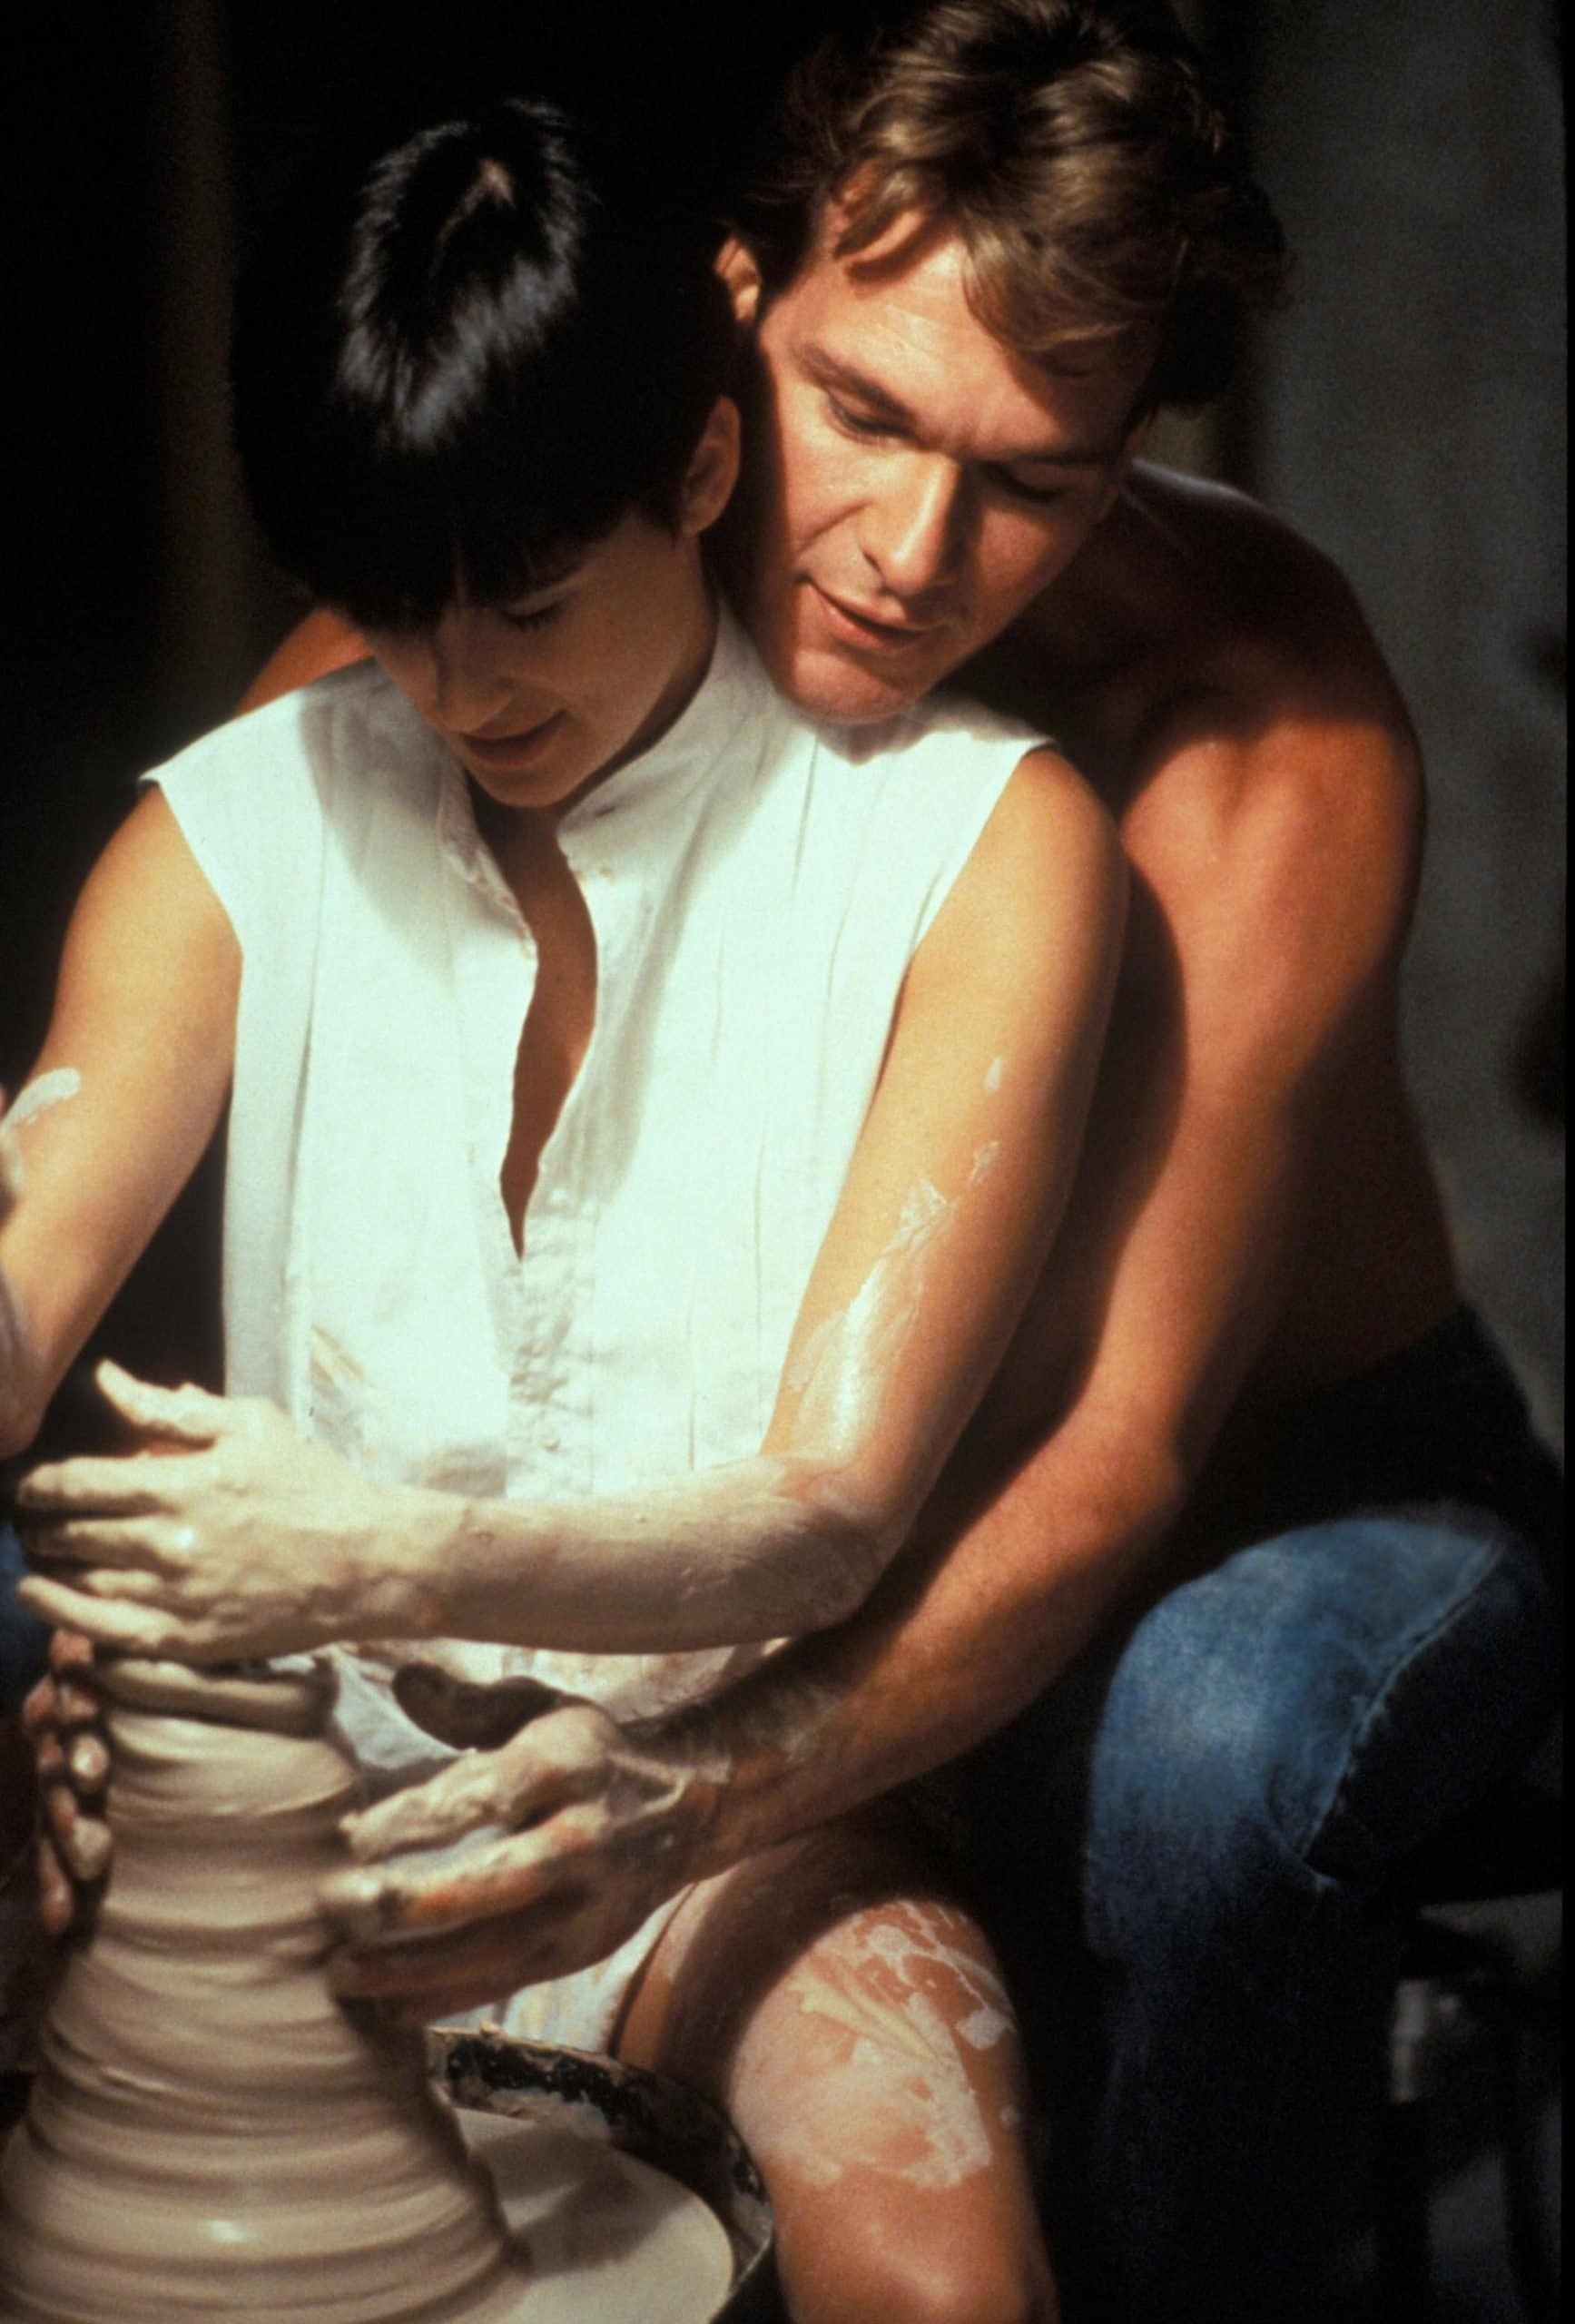 Demi Moore was 26 when filming the pottery scene in Ghost with Patrick Swayze